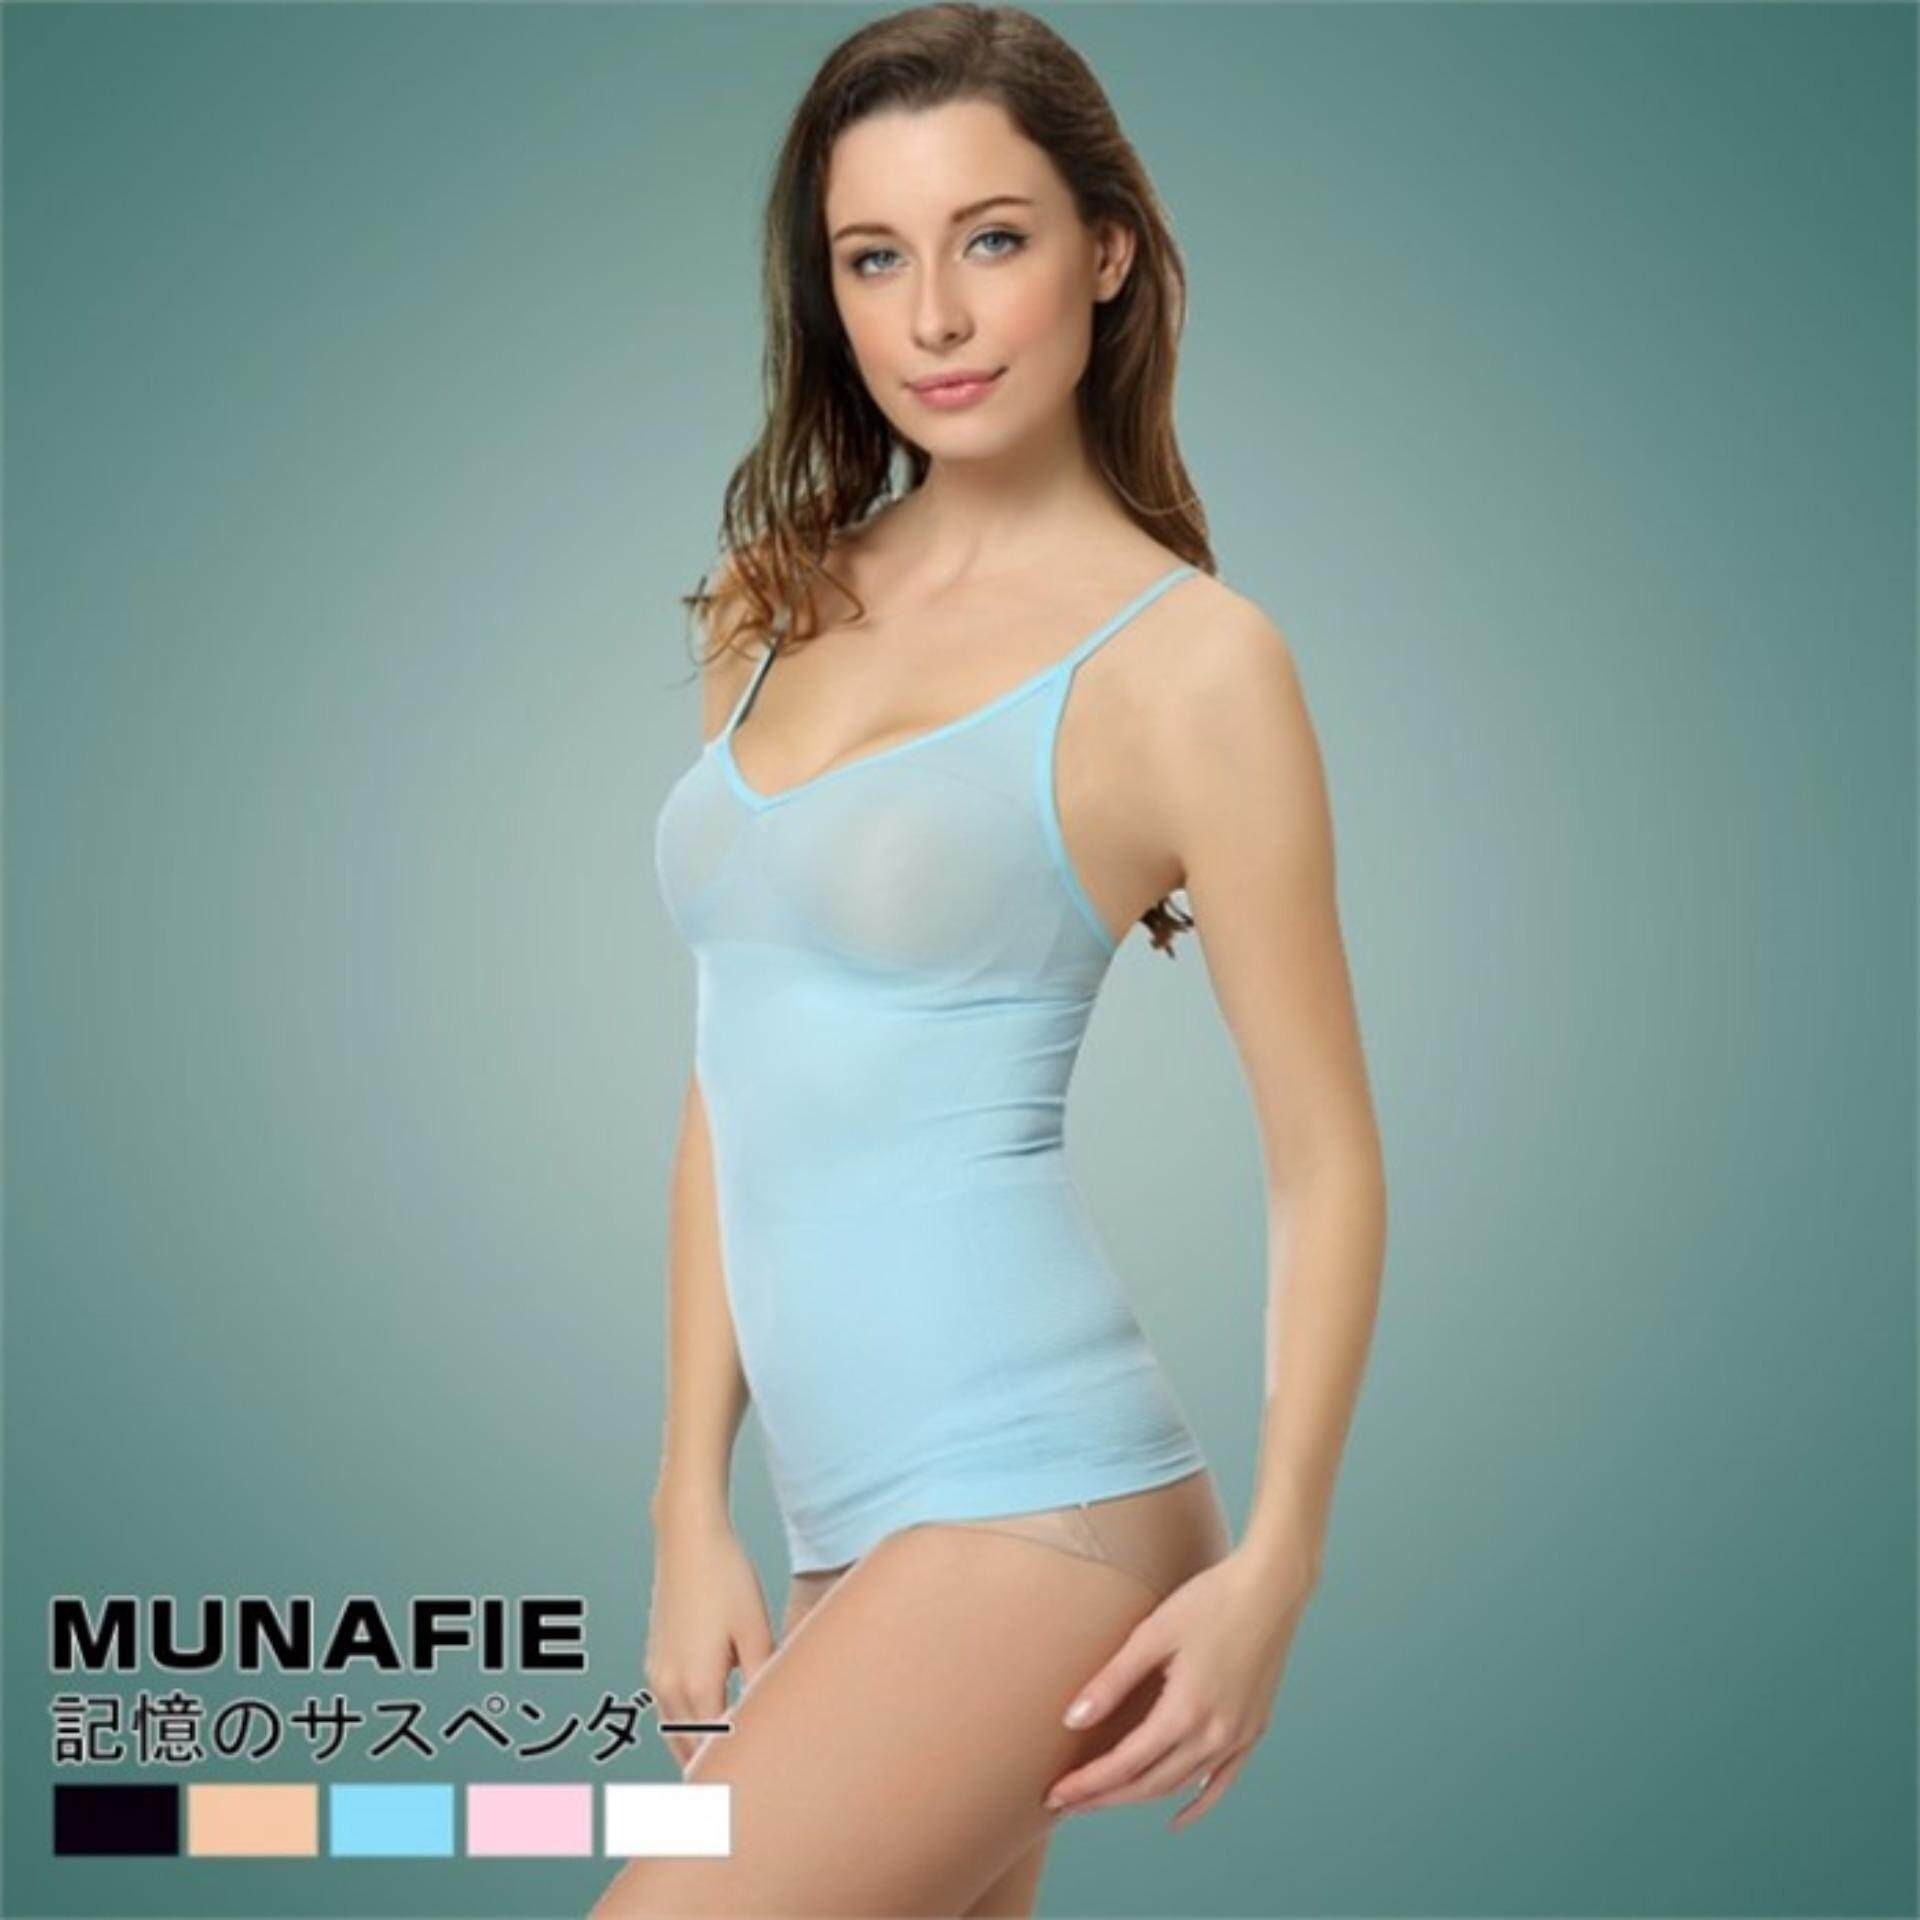 Japan ORI munafie single Waist Cincher Women's Under Bust Body Shape Wear - Blue Colour